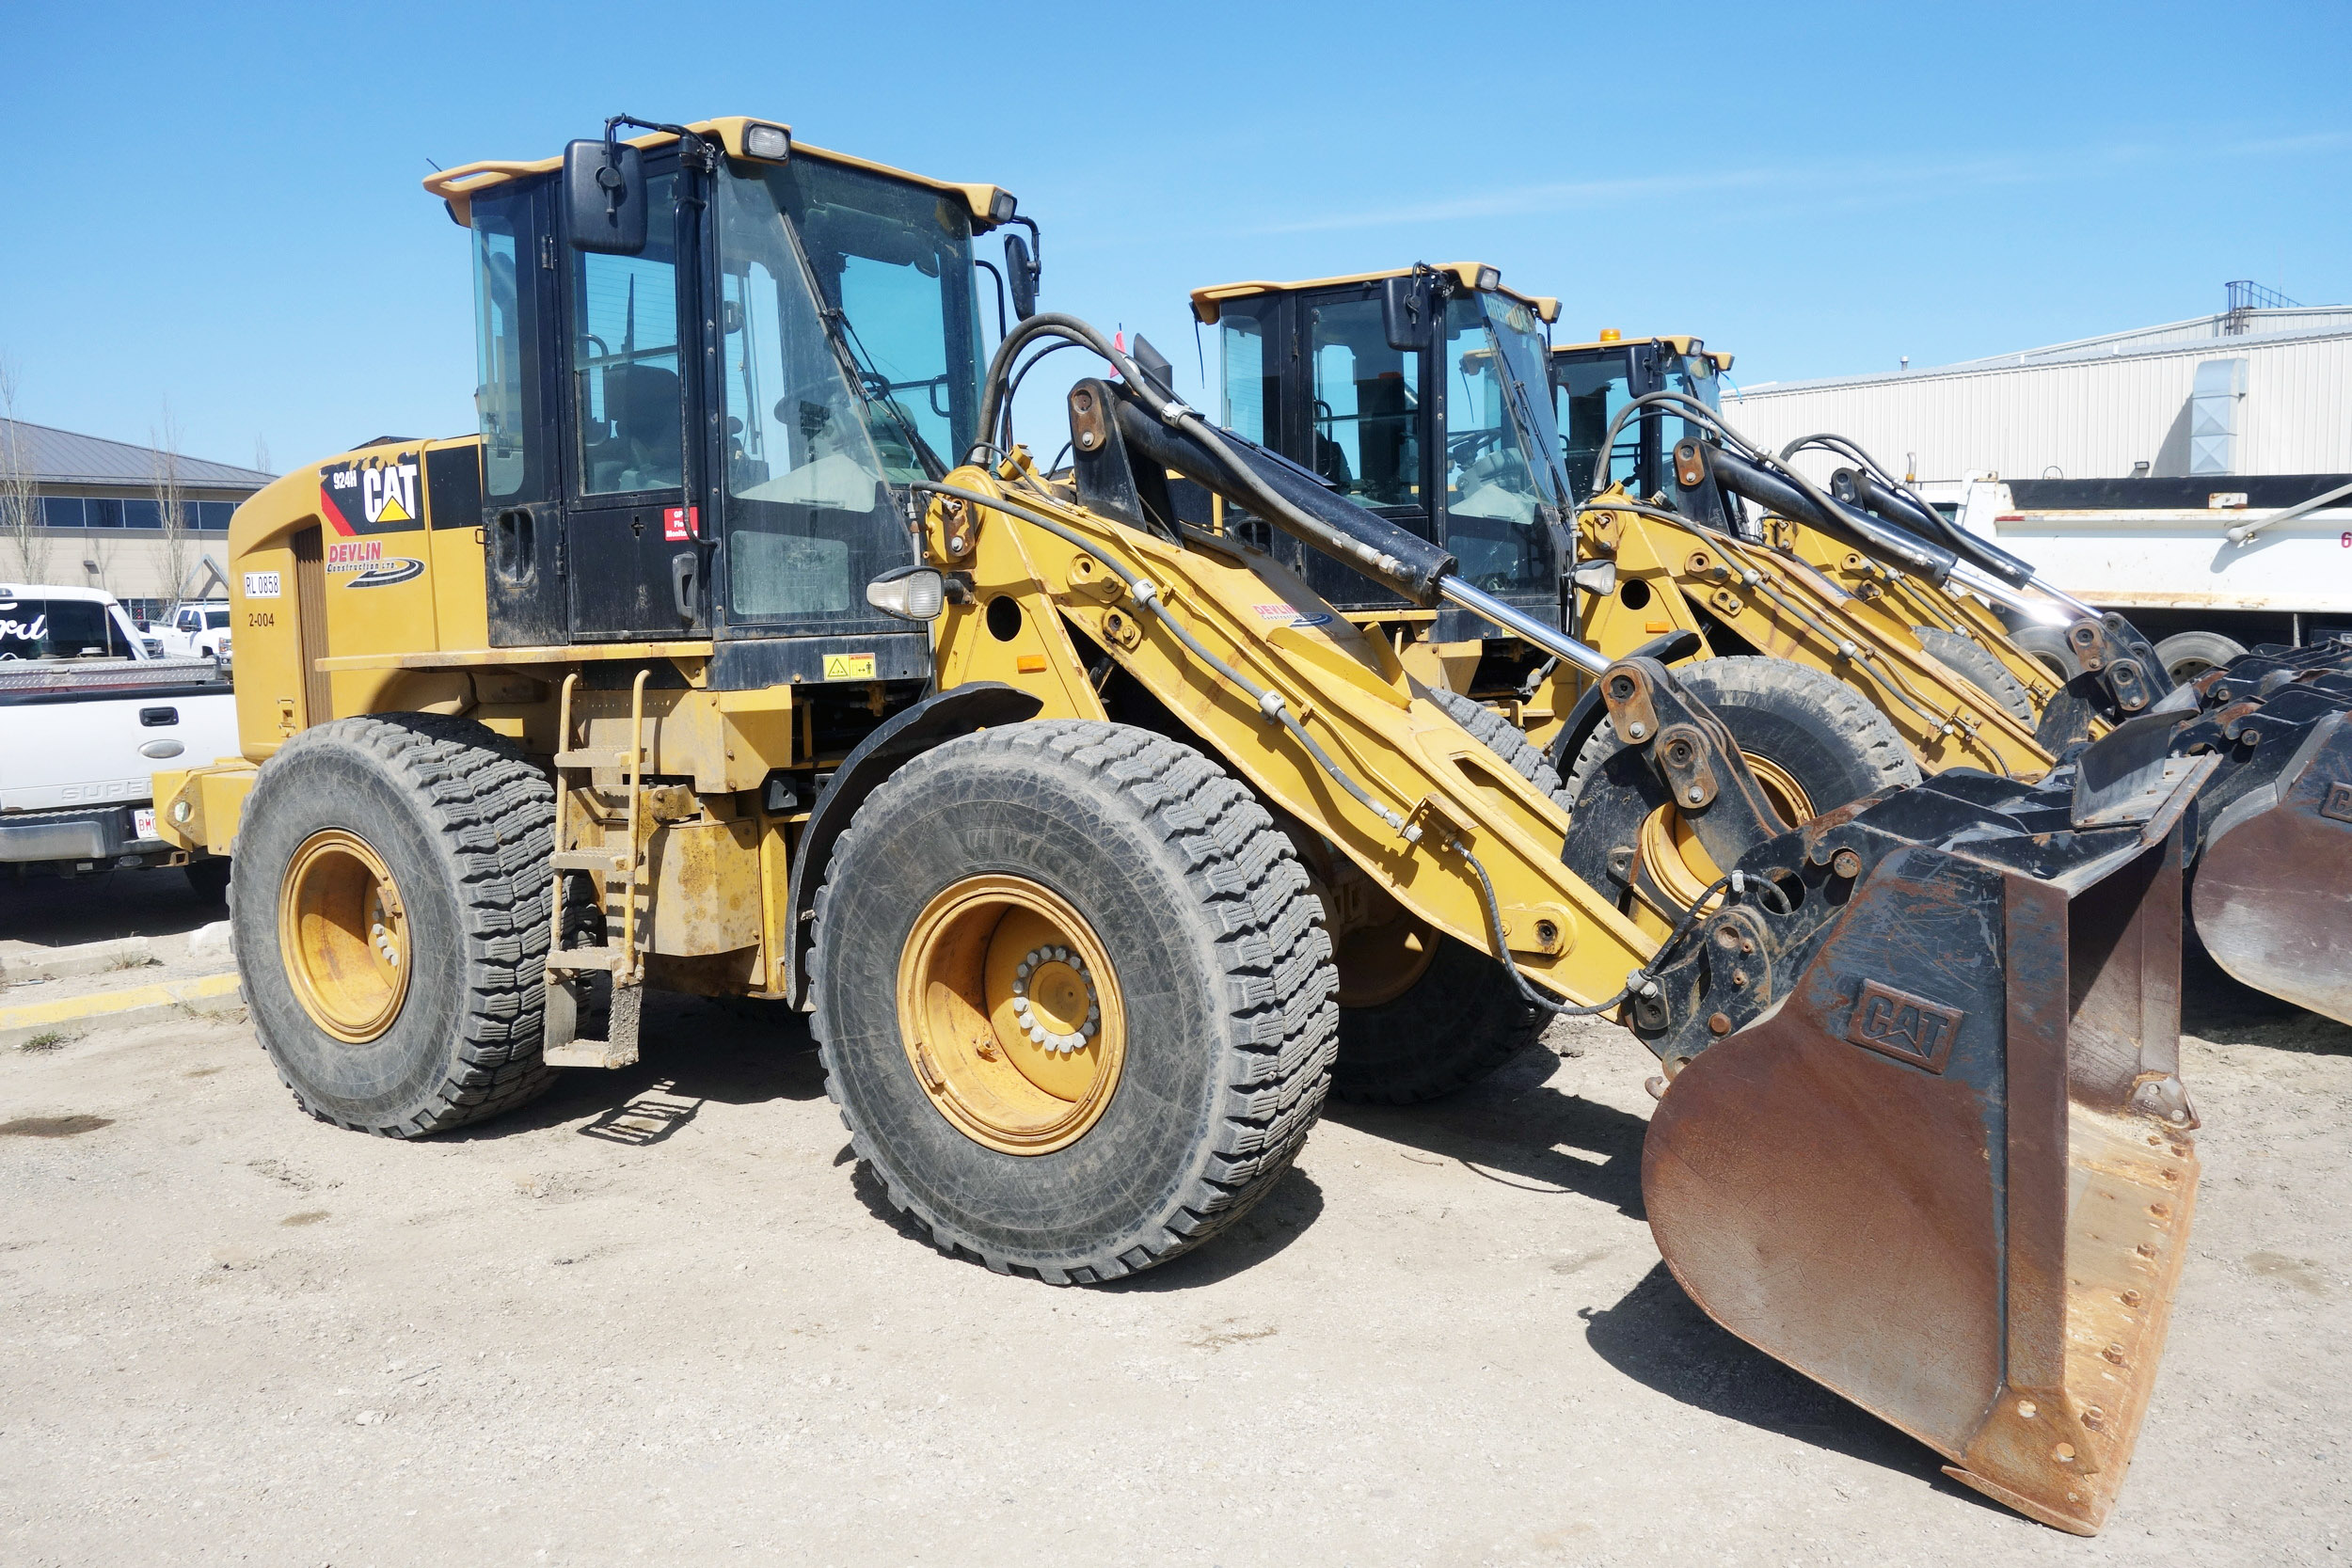 2012 Cat 924H Wheel Loader (3 Available)